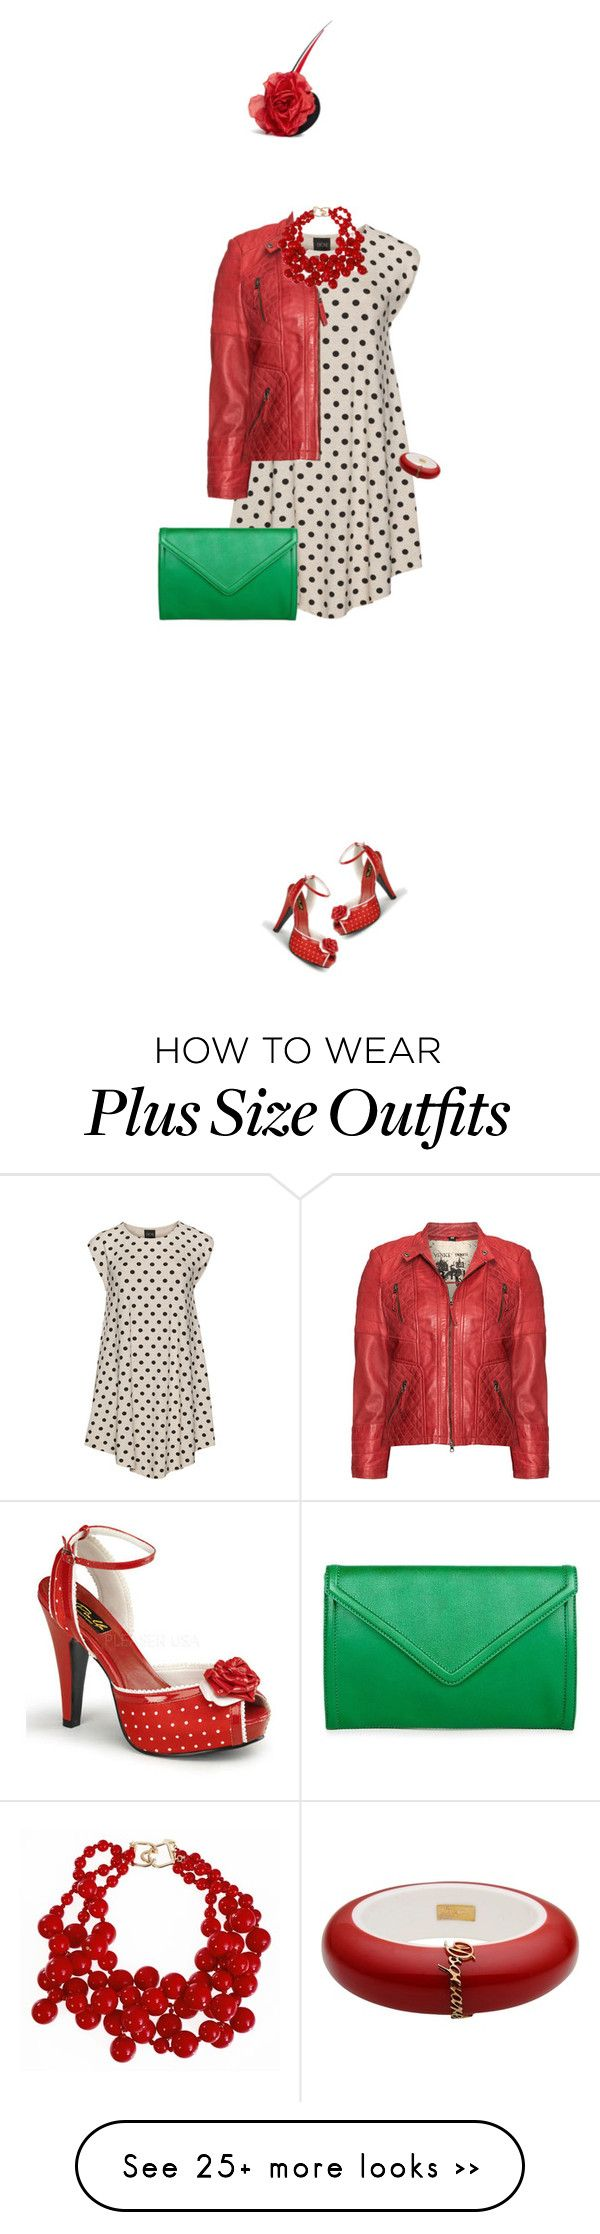 """""""Plus Size"""" by lorantin on Polyvore featuring moda, Choise, Cabrini, Piers Atkinson, Kenneth Jay Lane, Dsquared2 e Isaac Mizrahi"""